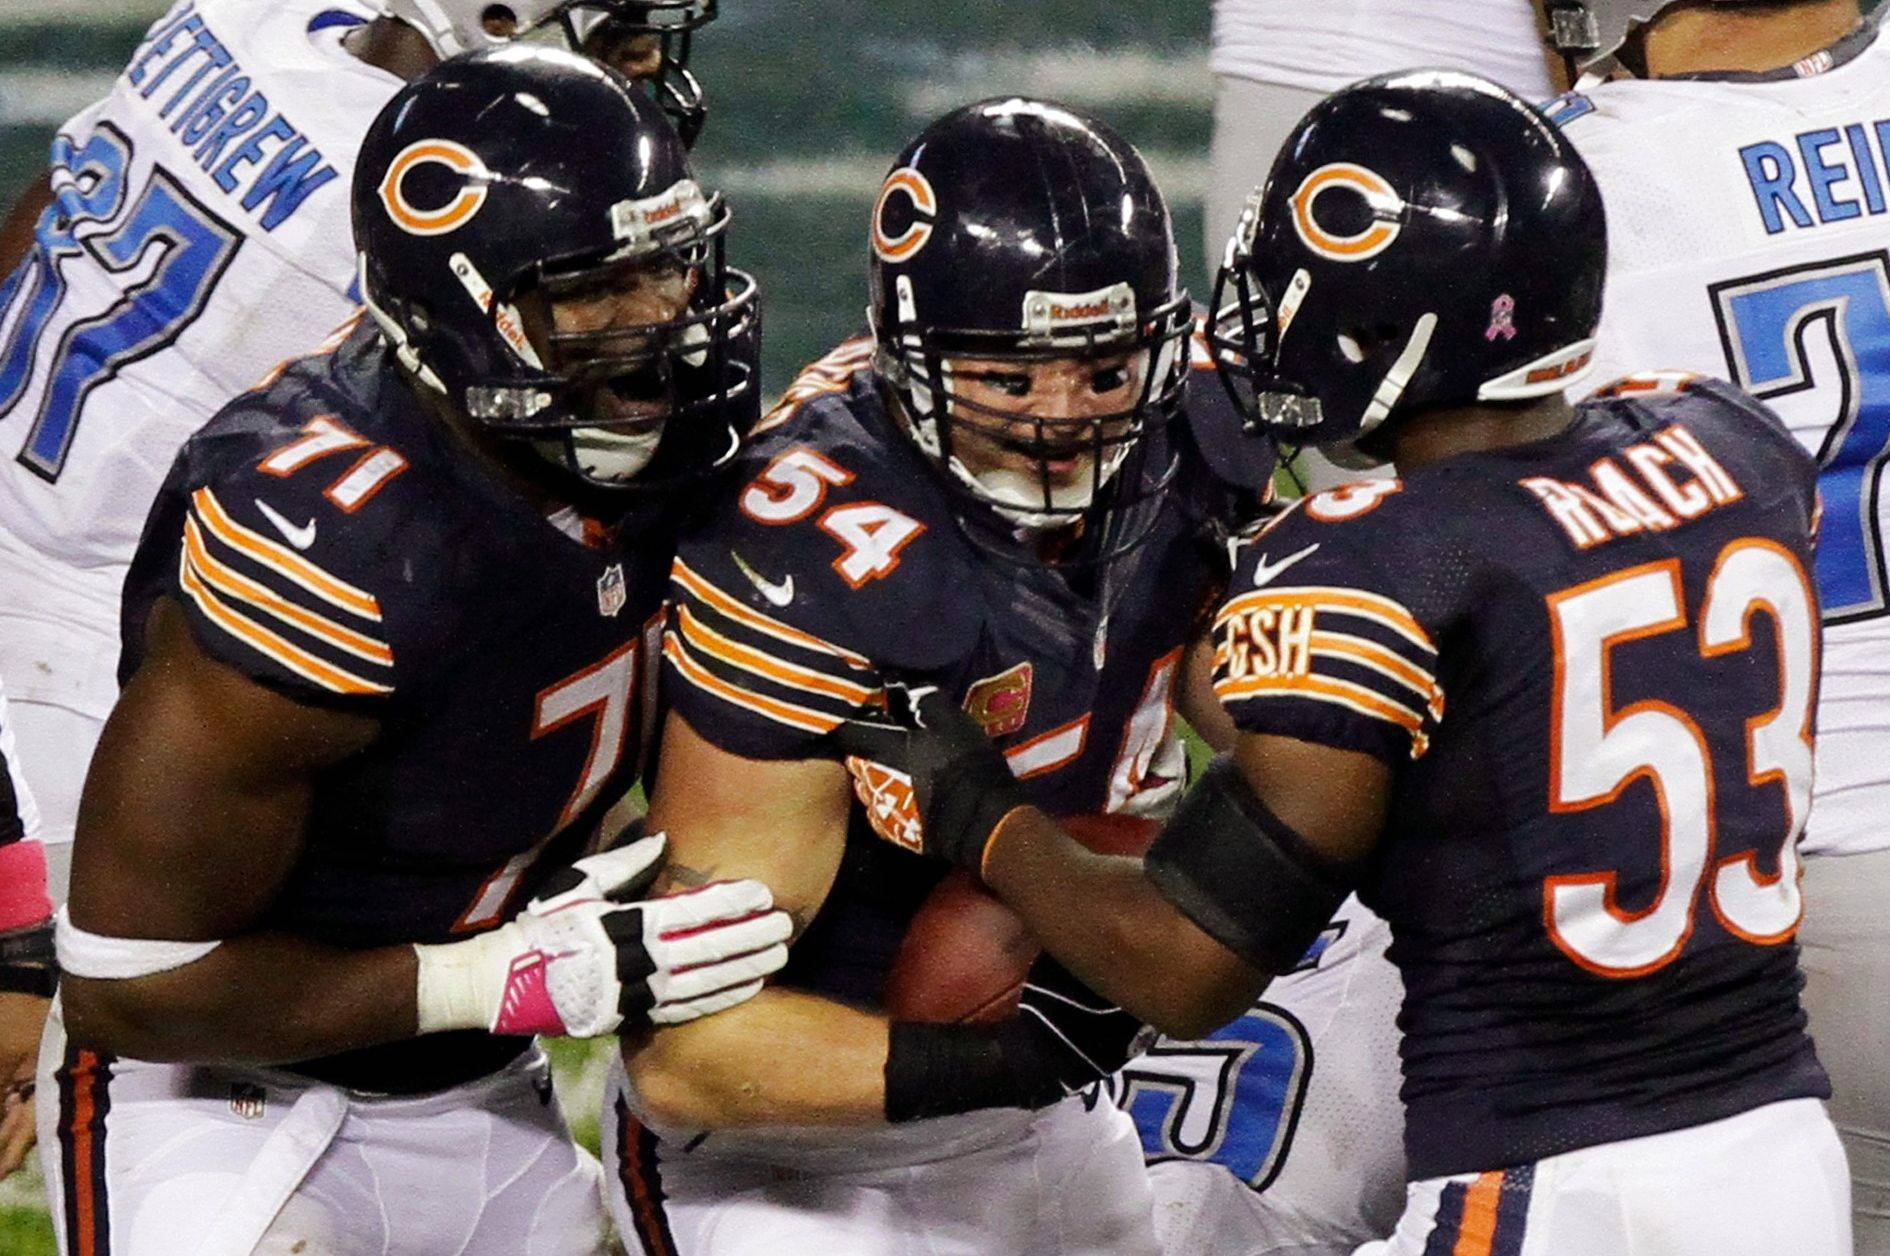 The contracts of Brian Urlacher (54), Israel Idonije and Nick Roach (53) are all up. The Bears figure to keep Idonije and Roach, but the future of Urlacher is much more up in the air.